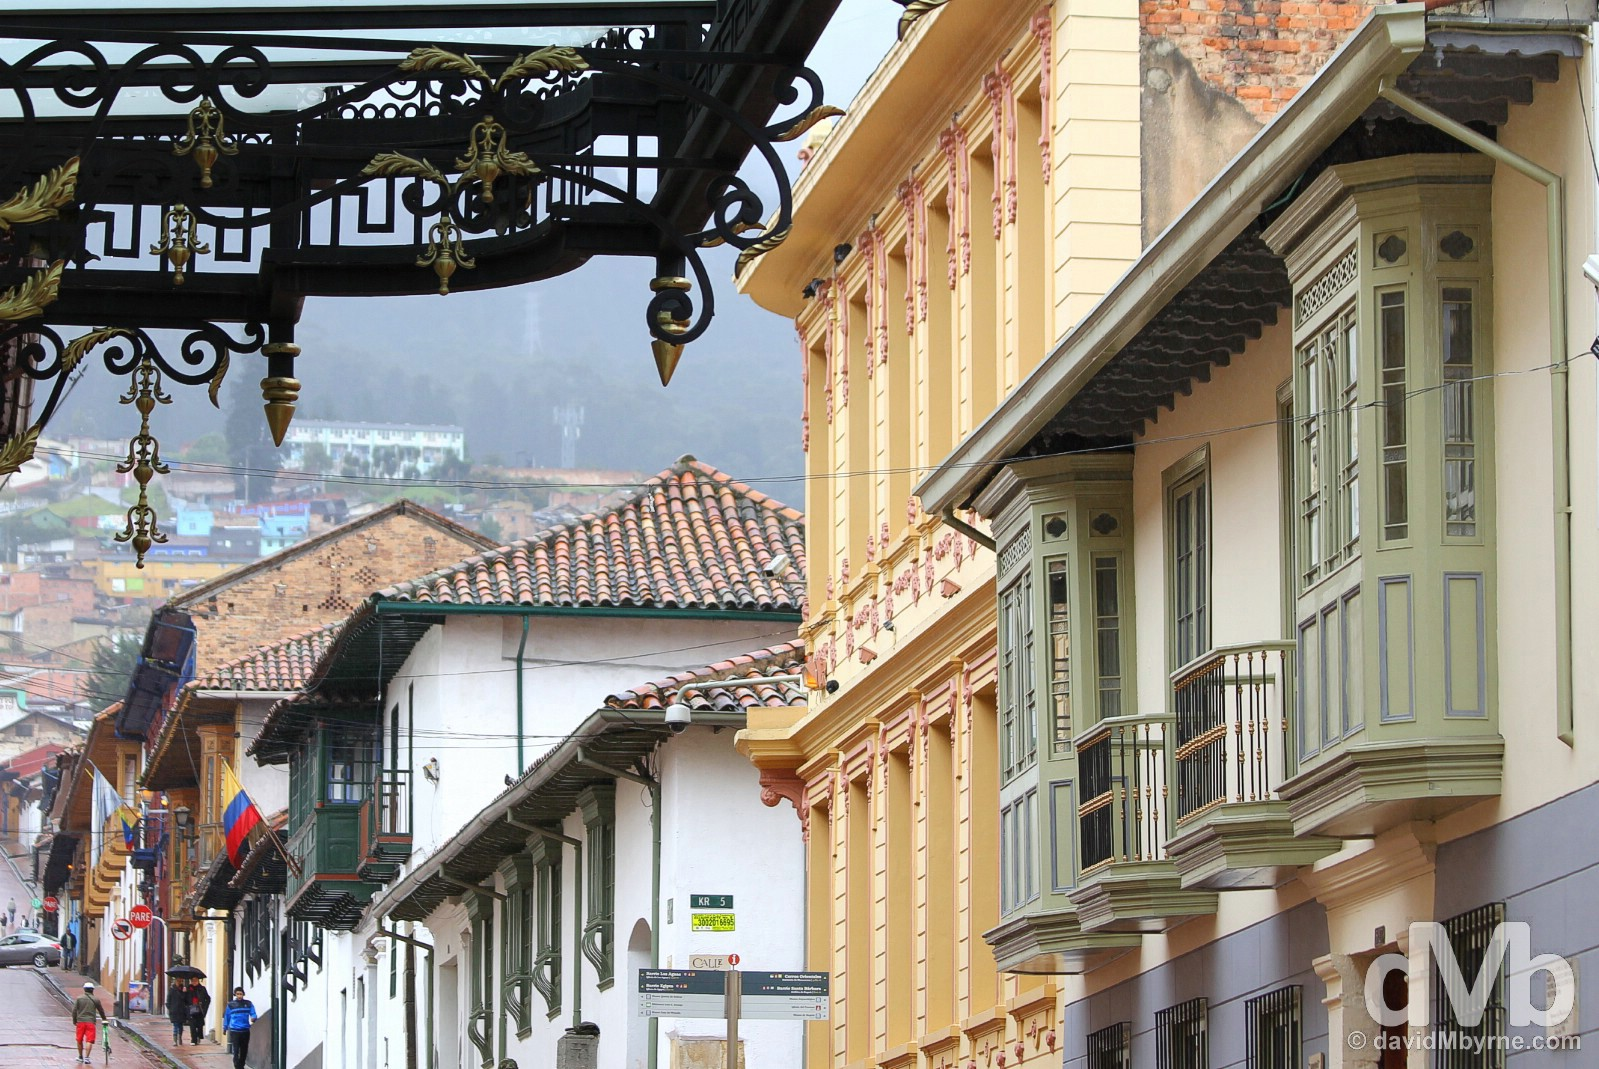 The La Candelaria district in the historic centre of Bogota, Colombia. June 29, 2015.